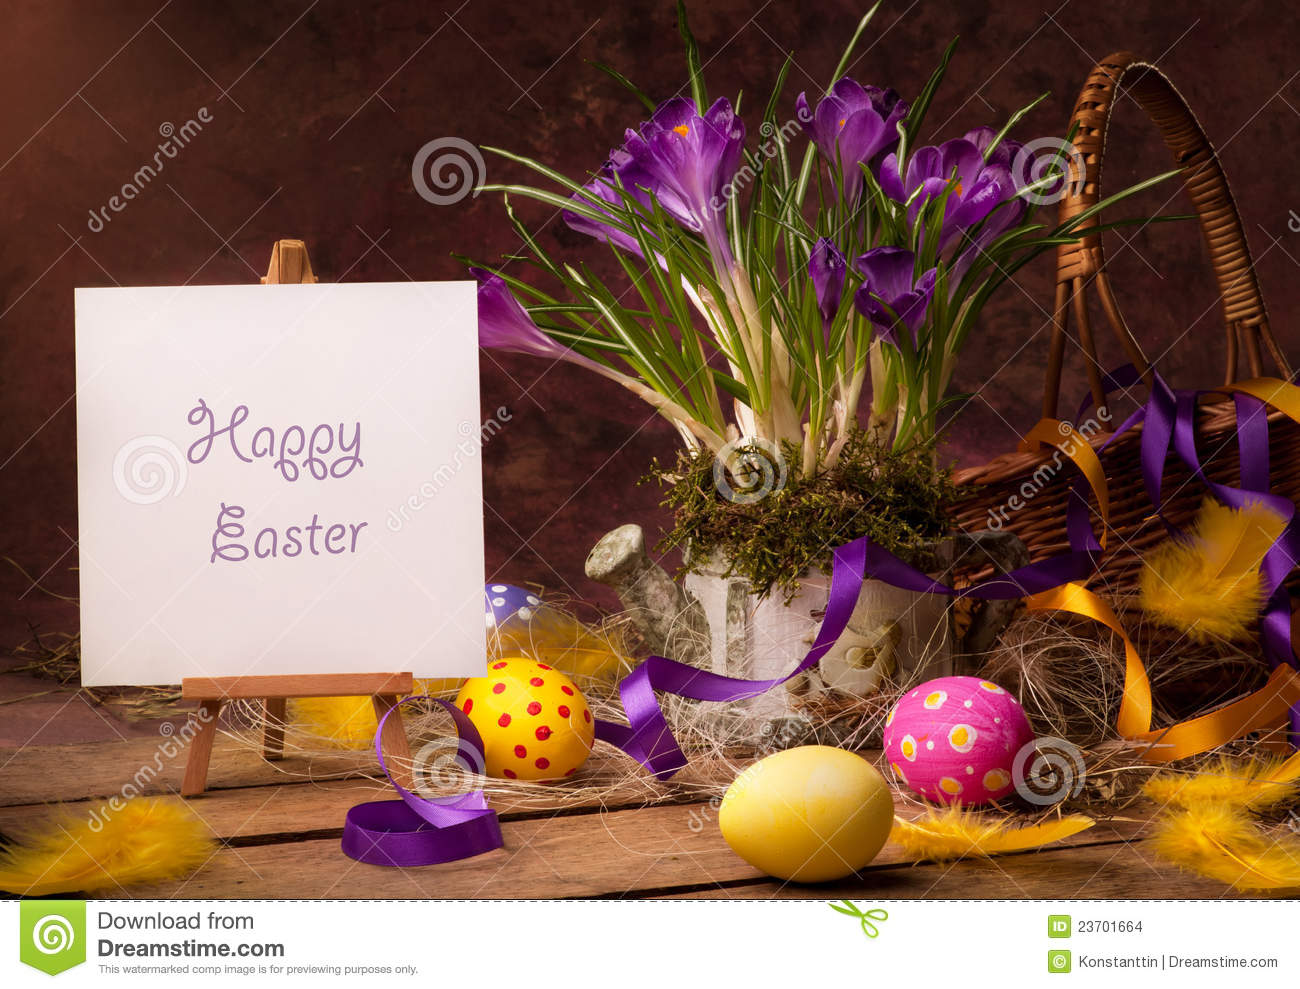 Vintage happy easter greeting card stock photo image of holiday download vintage happy easter greeting card stock photo image of holiday color 23701664 m4hsunfo